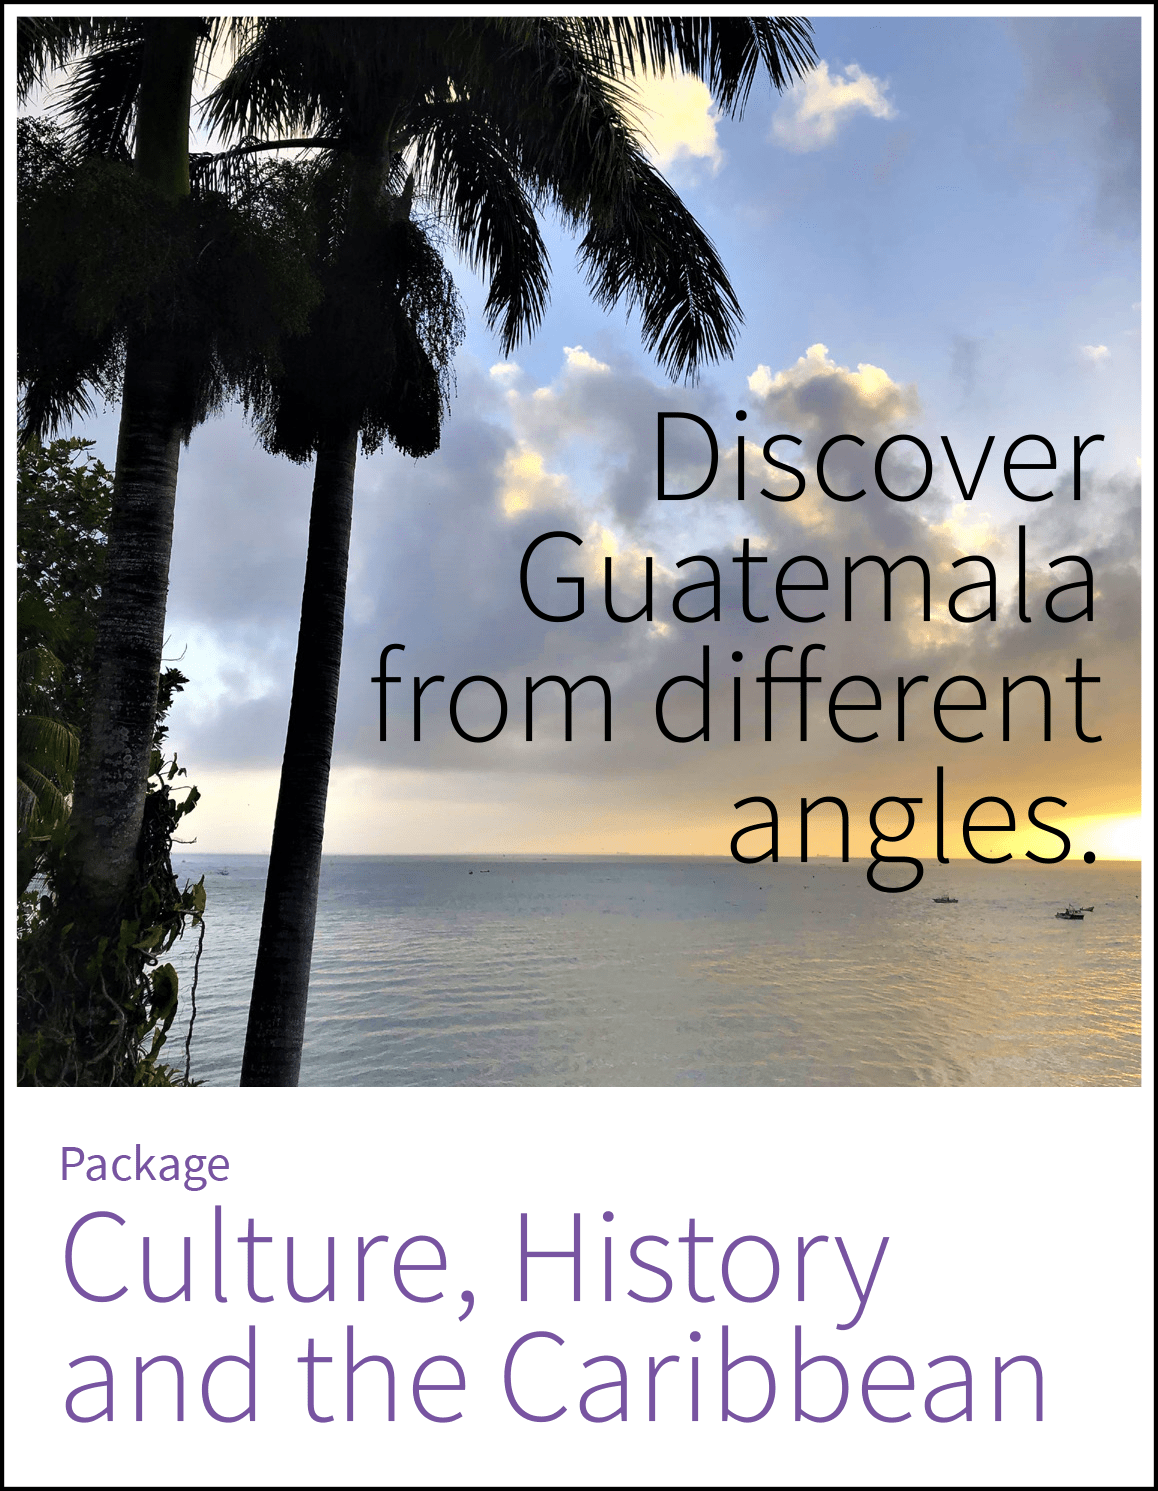 Culture, History and the Caribbean, 10-day package.